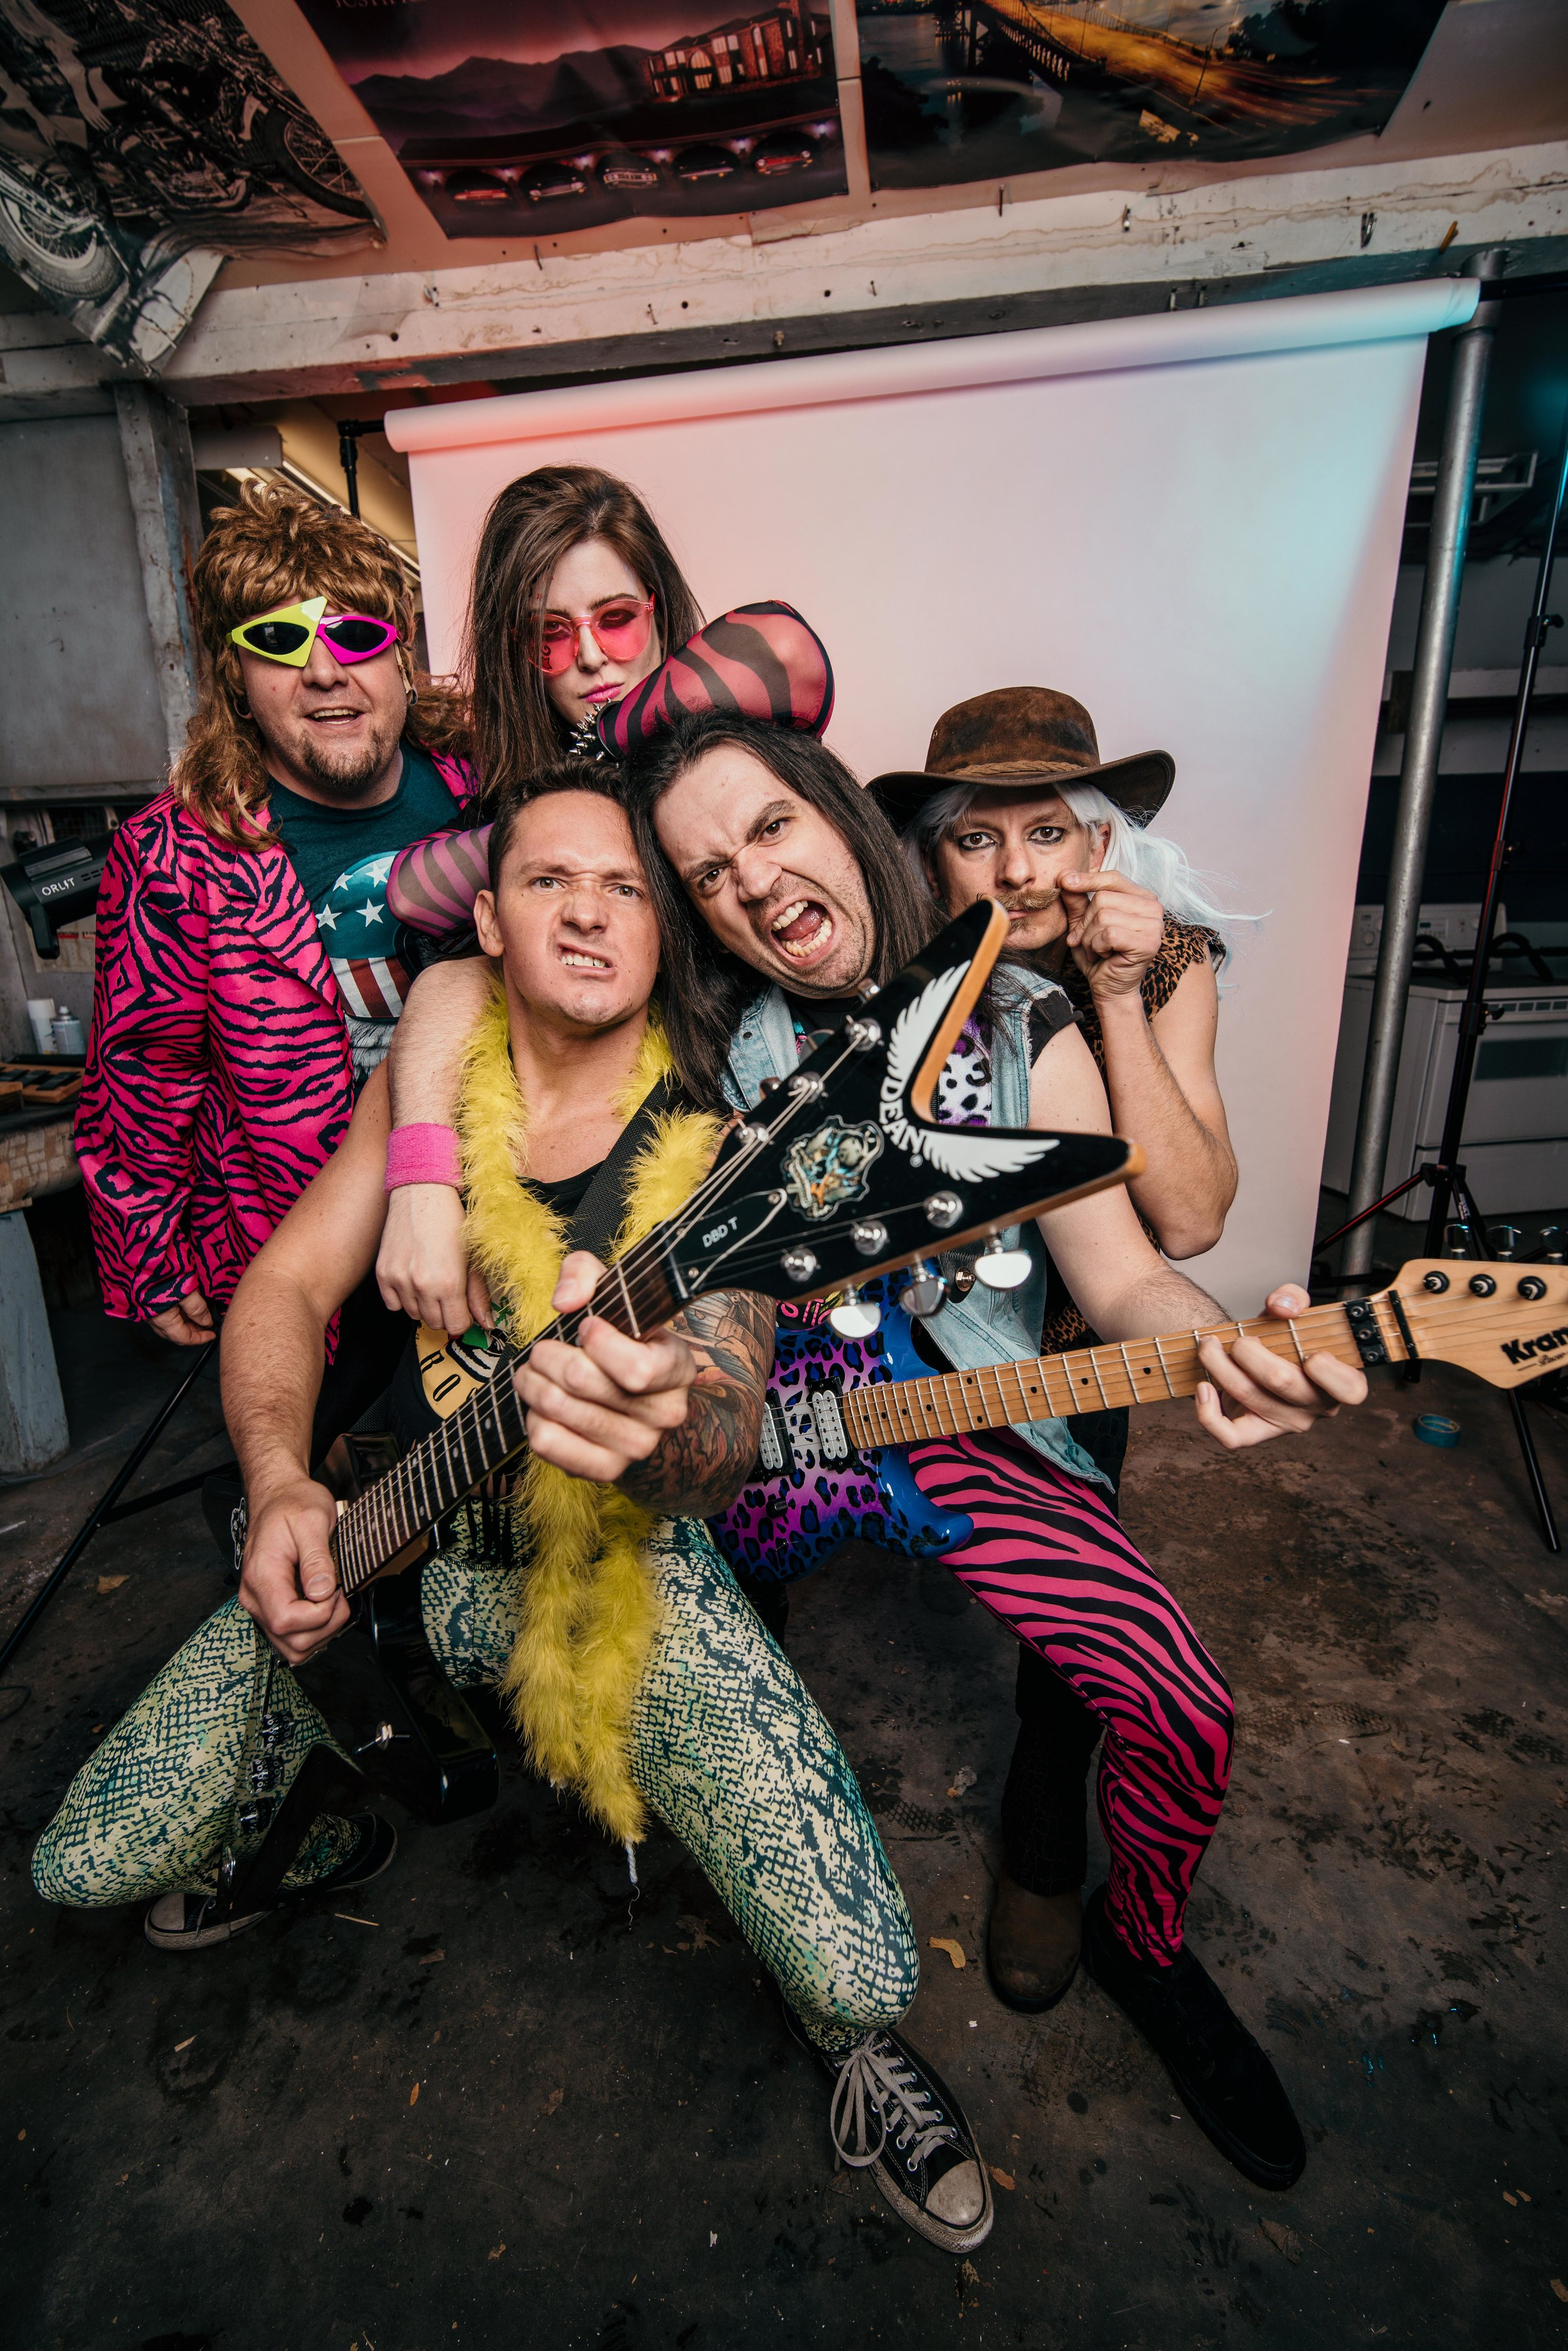 denver commercial photographer midnight party machine cover band -DSC08416.jpg